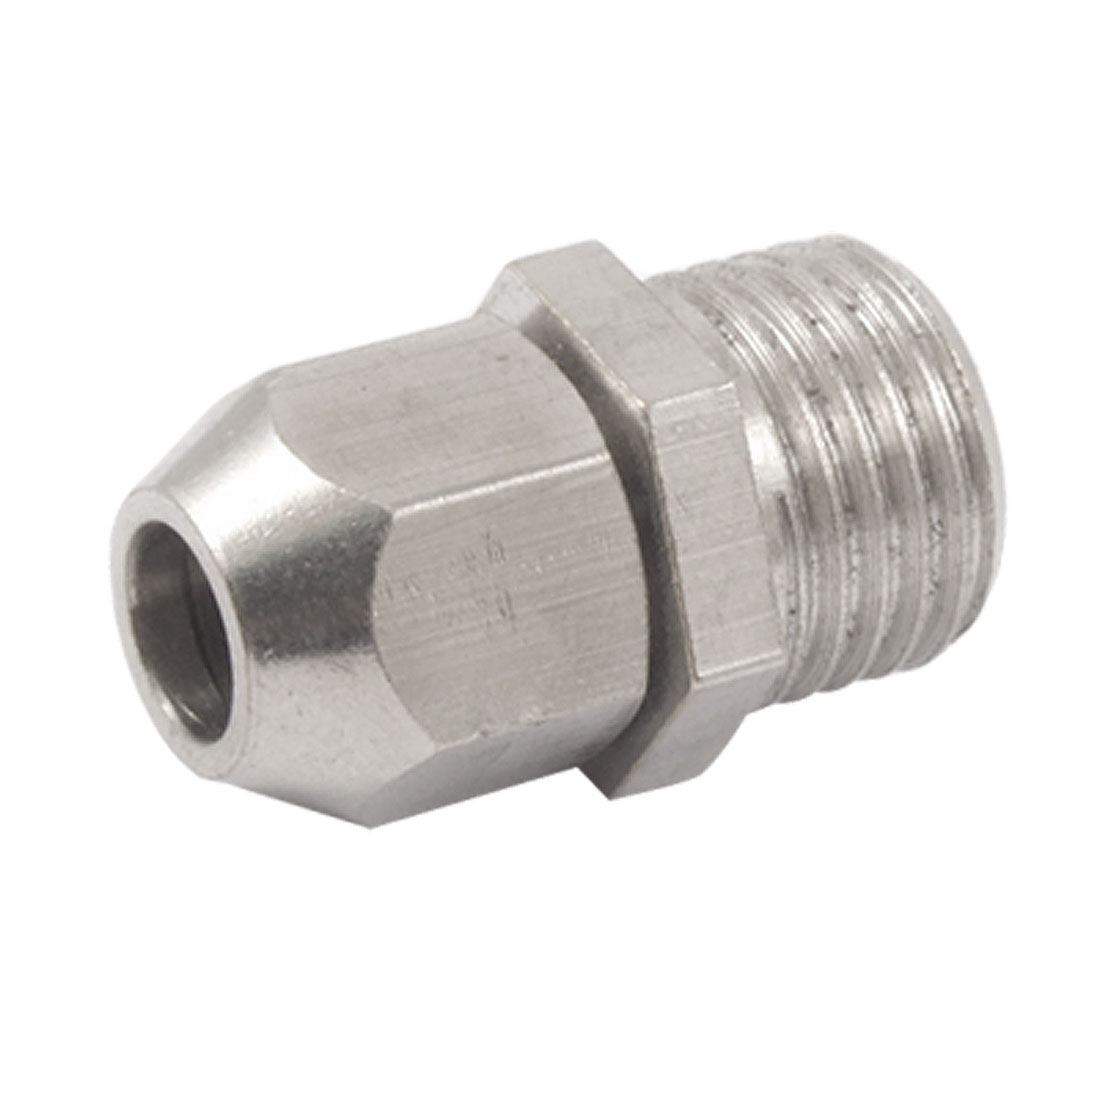 13mm Male Thread 6mm Air Hose Pneumatic Coupler Quick Coupling Connector